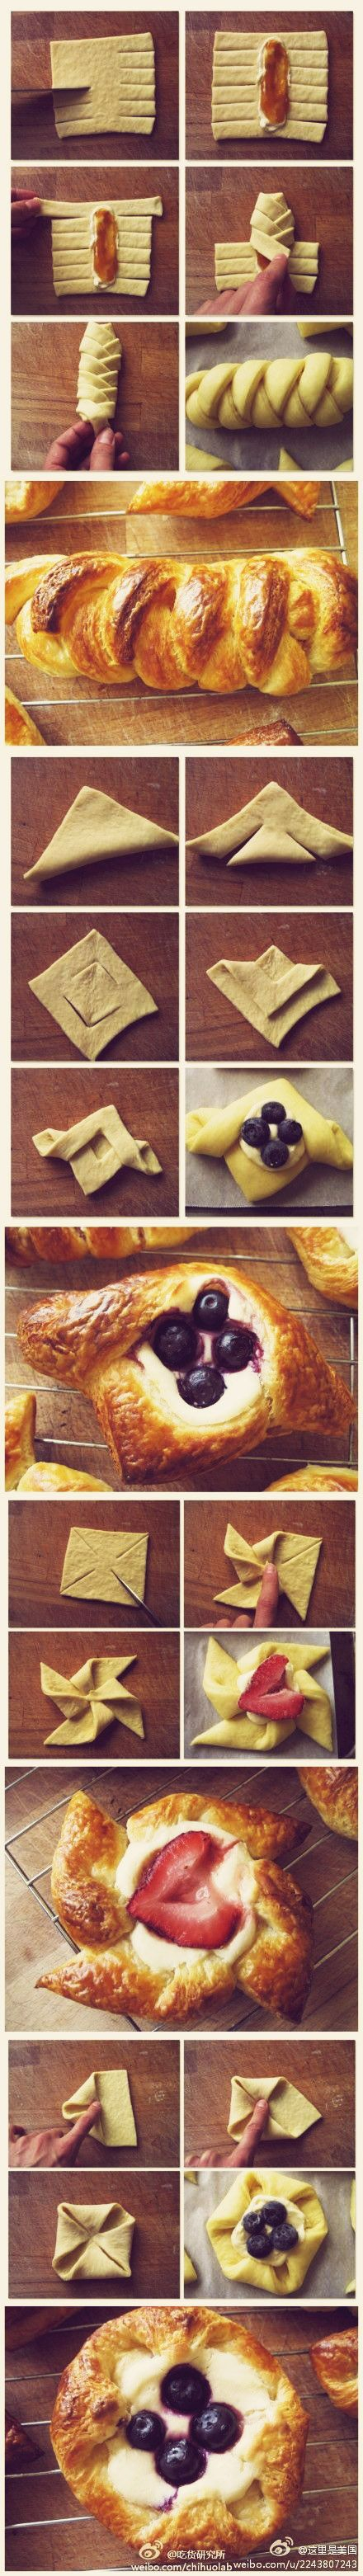 Pastry folding methods. Danish, pinwheel, more.